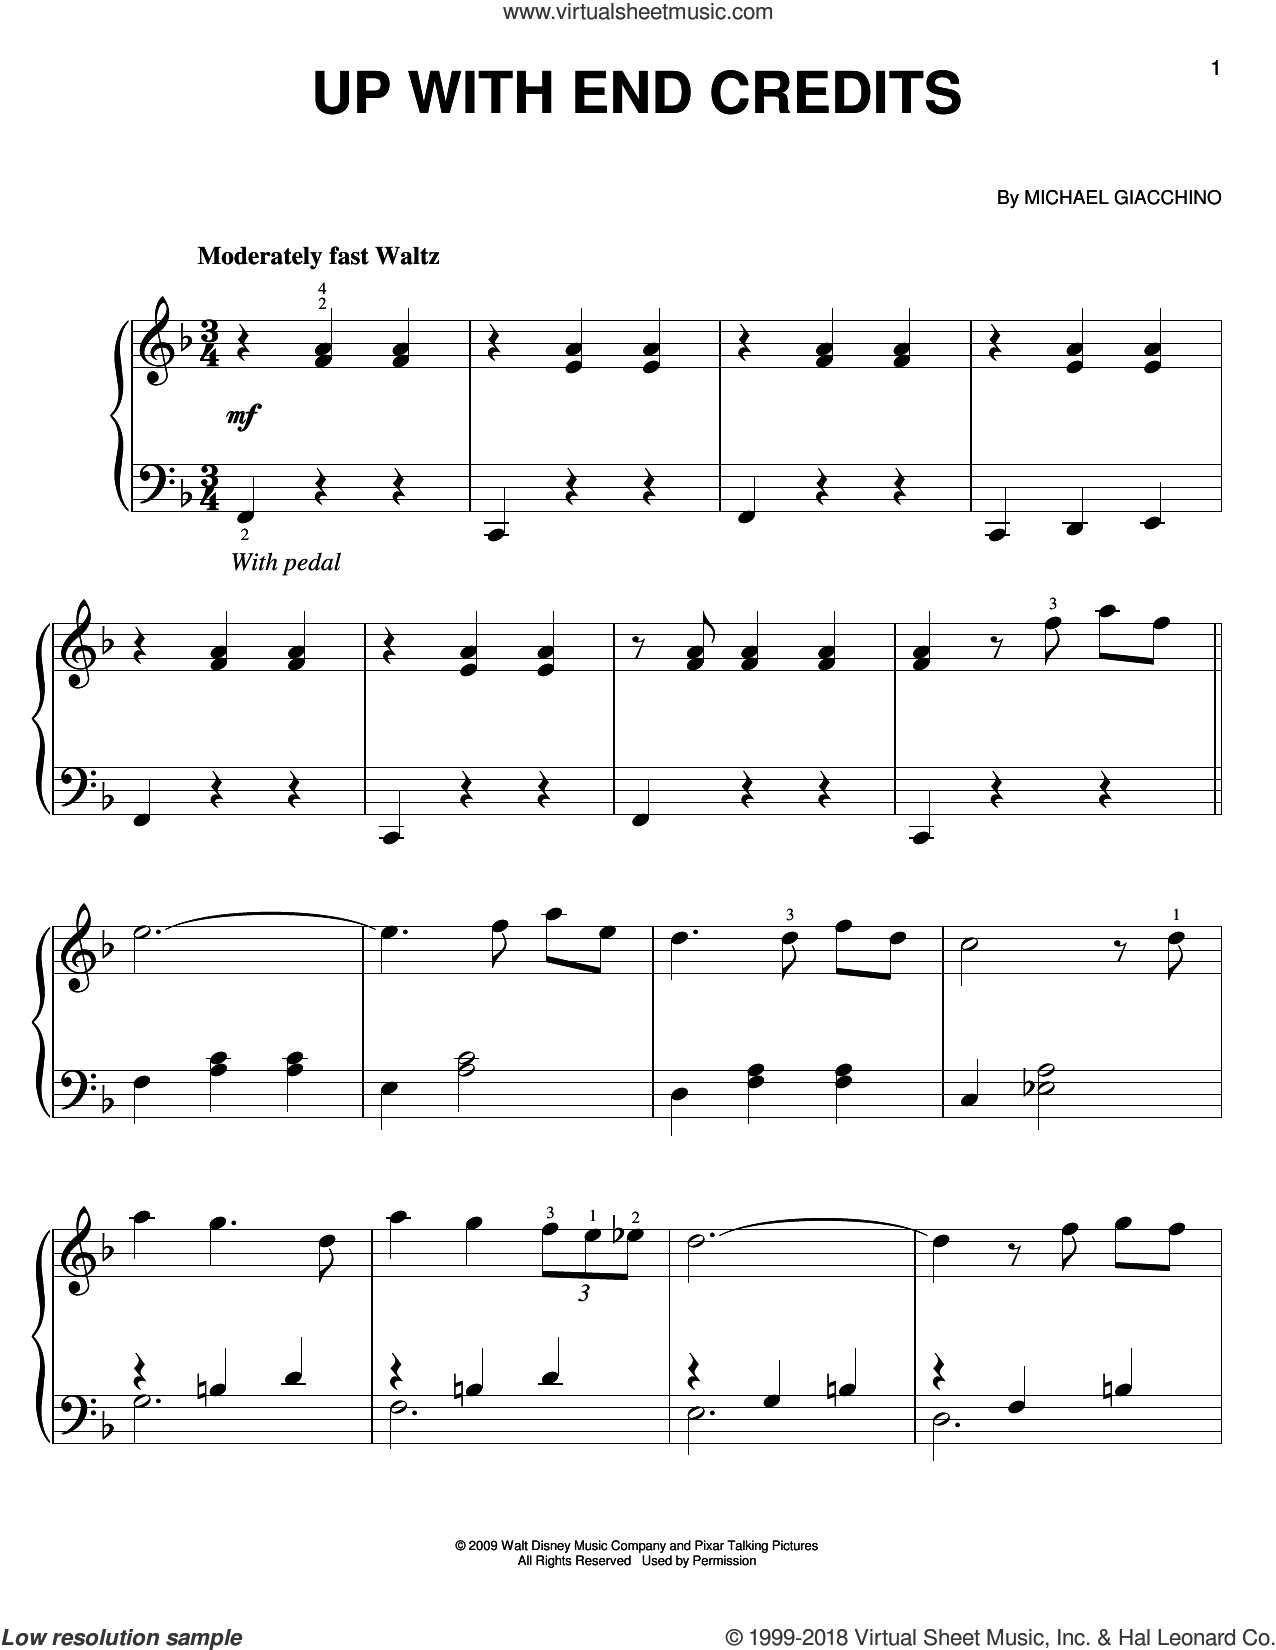 Up With End Credits sheet music for piano solo by Michael Giacchino. Score Image Preview.